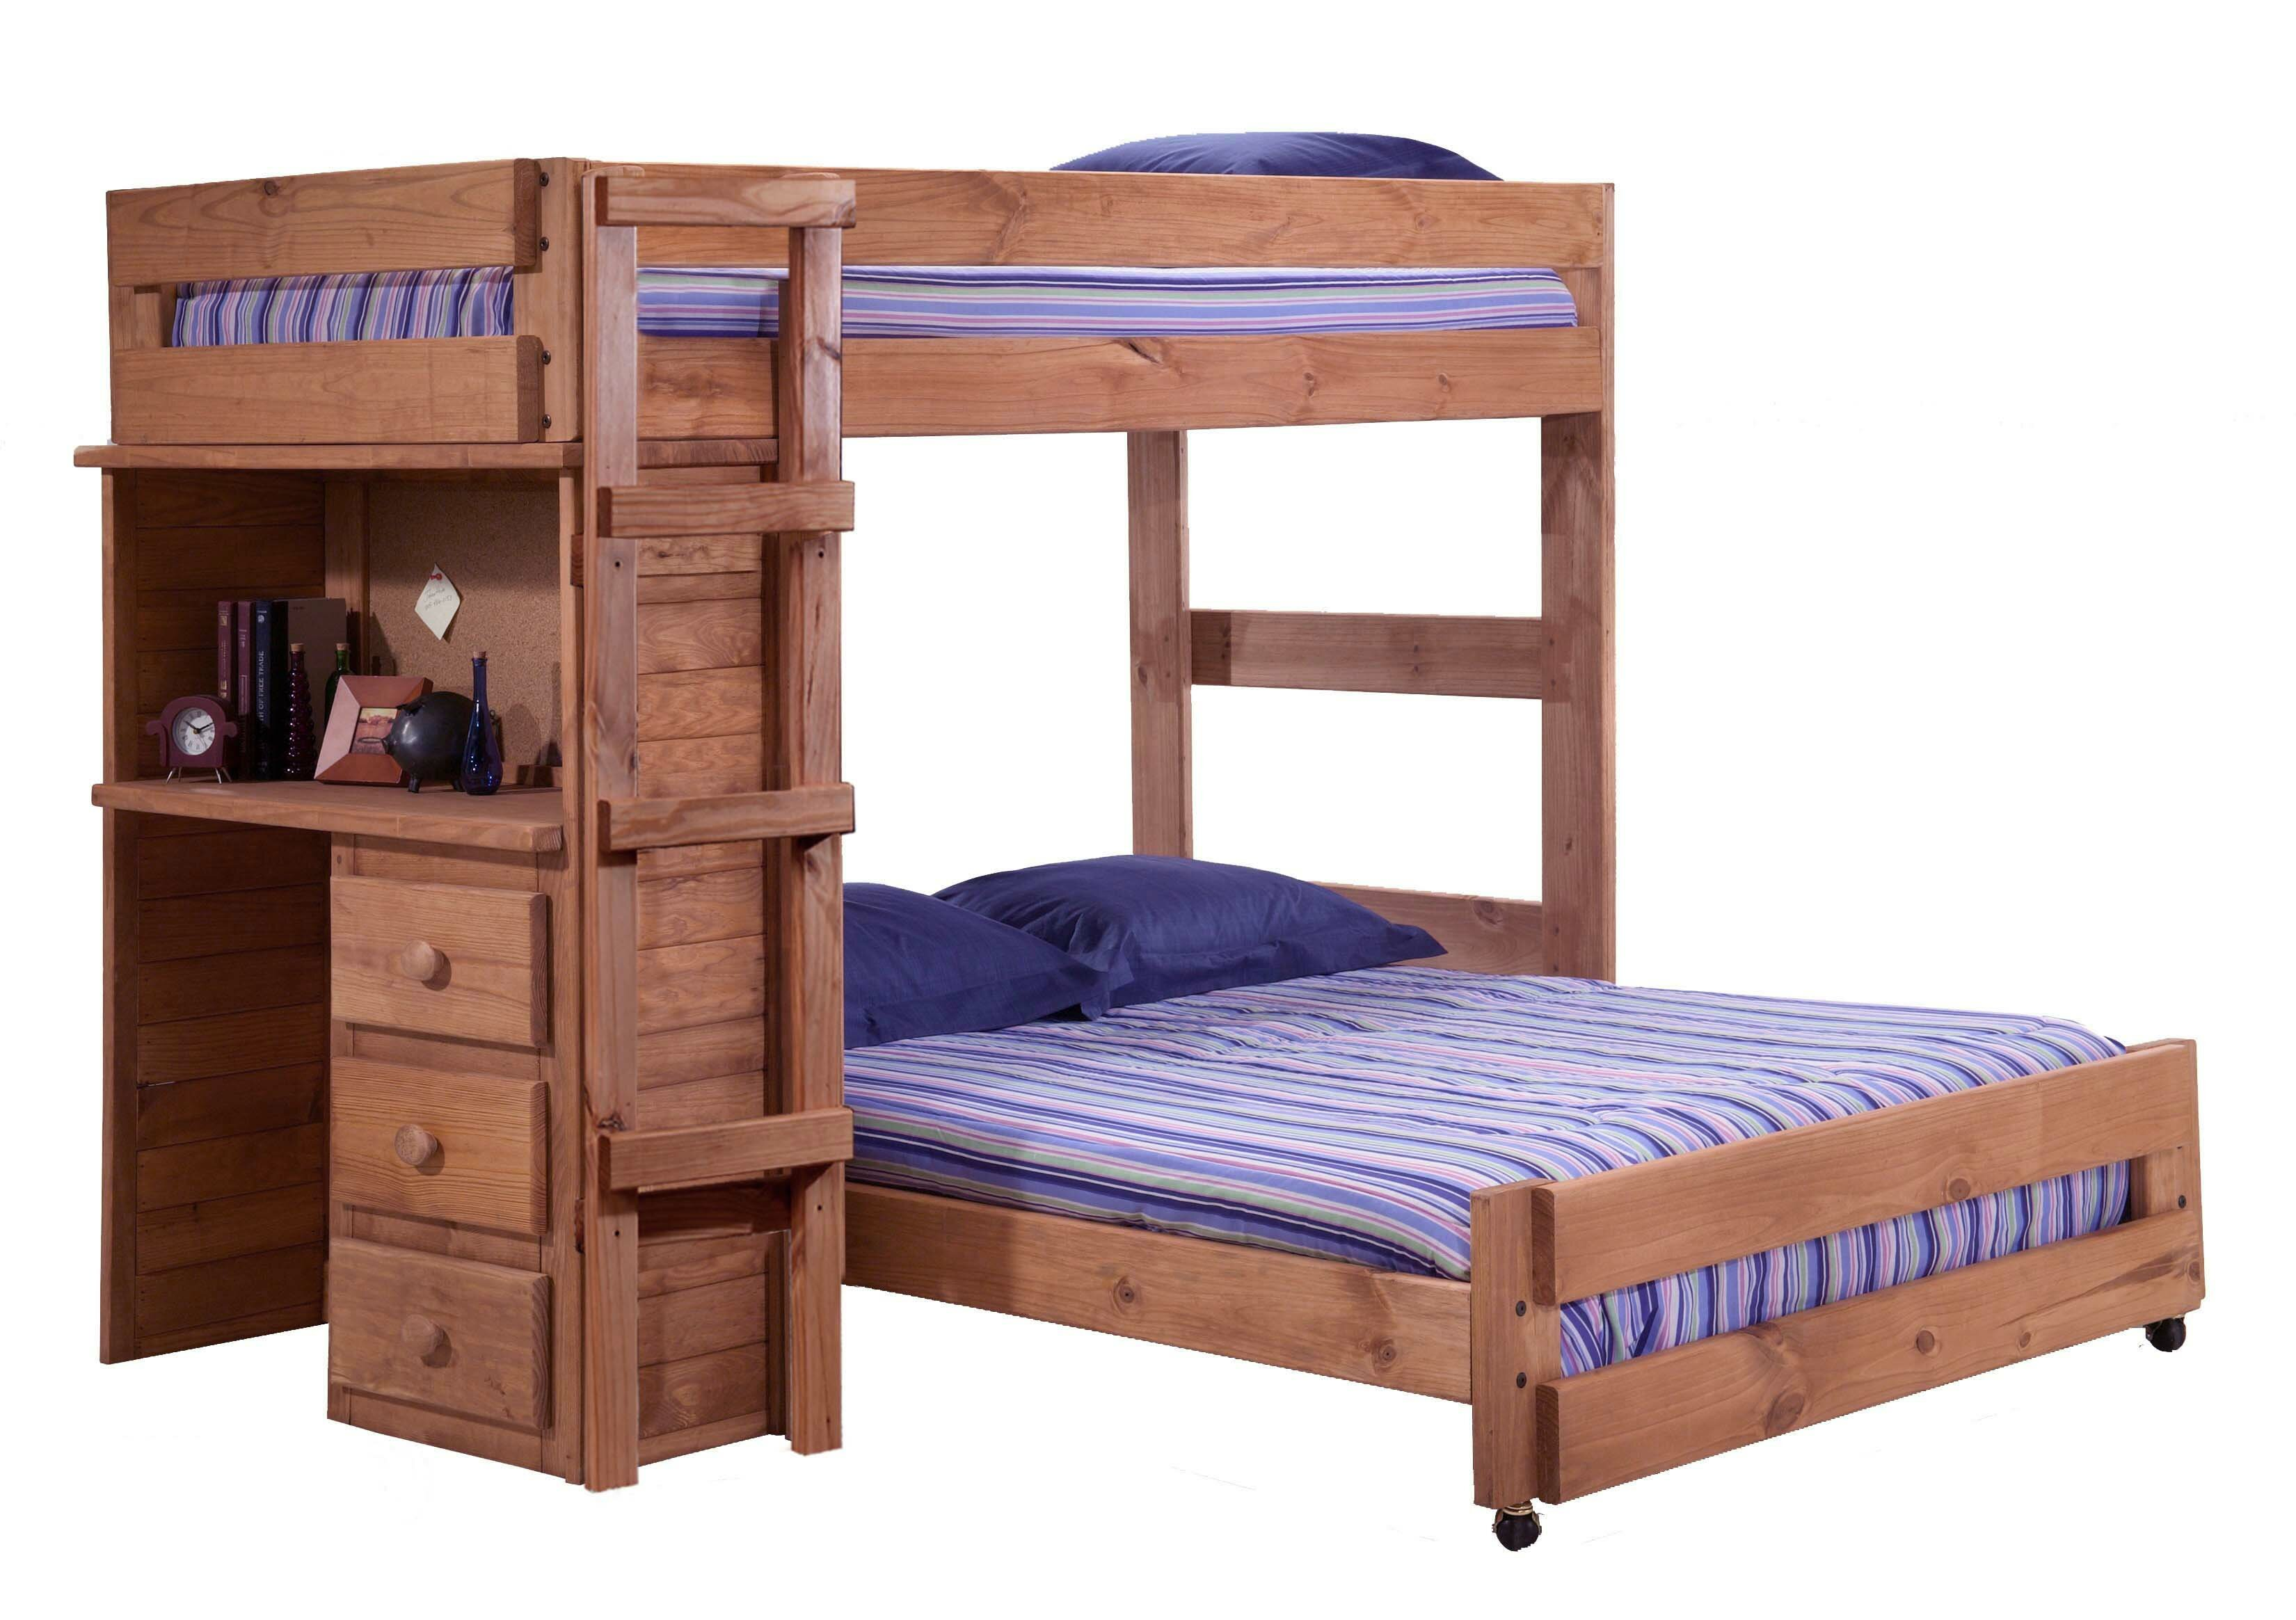 Wood Bunk Bed With Desk Cheaper Than Retail Price Buy Clothing Accessories And Lifestyle Products For Women Men